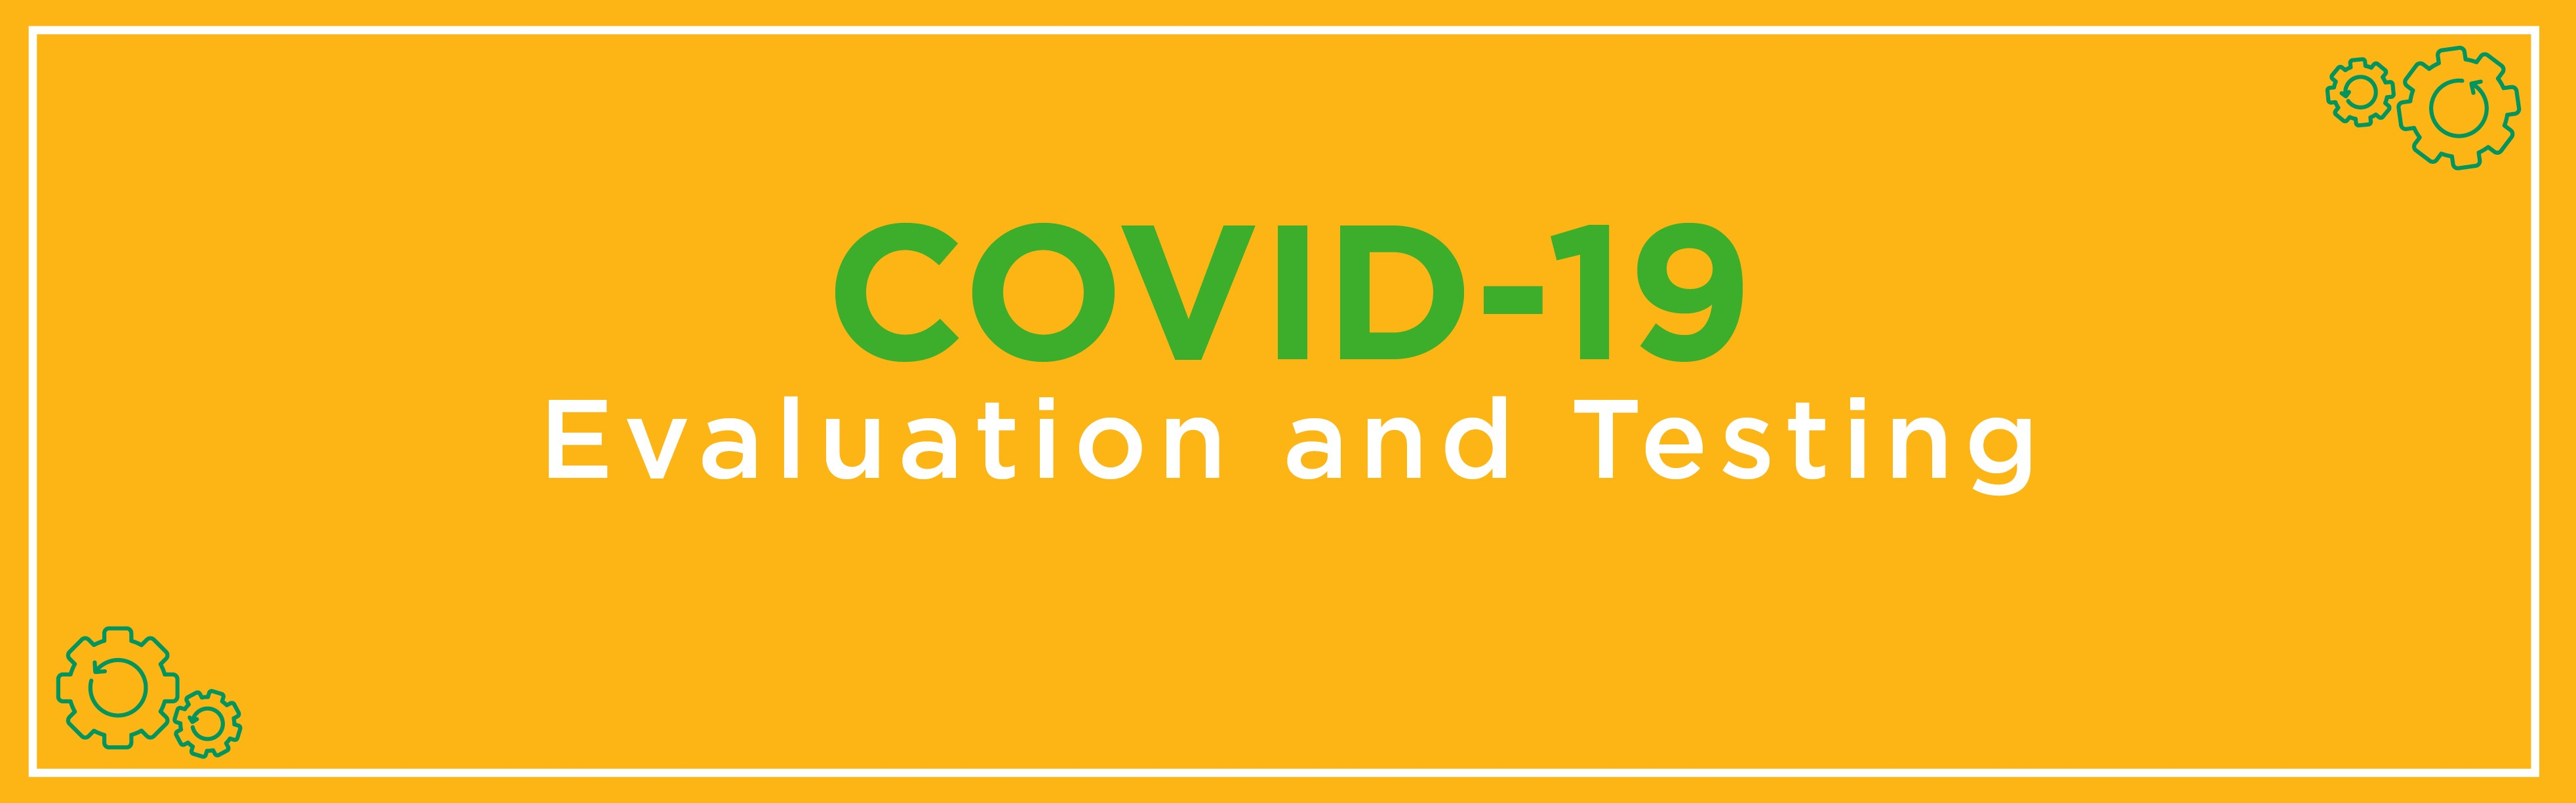 COVID-19 Evaluation and Testing